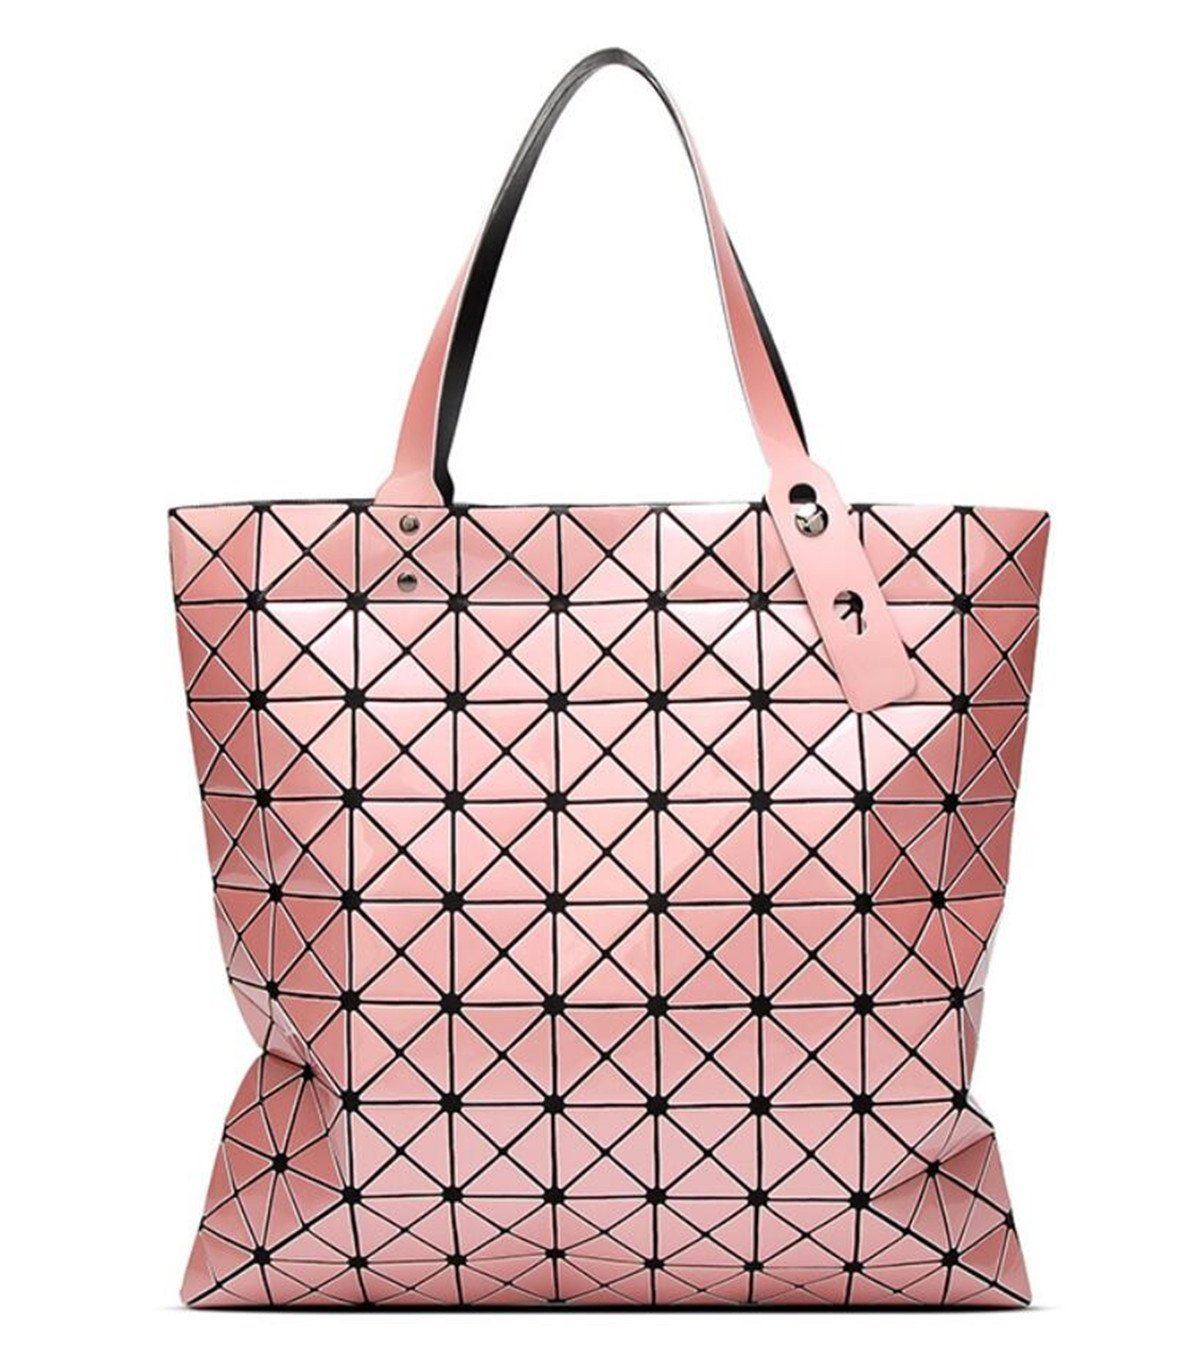 Kayers Sulliva Womens Fashion Geometric Plaid Tote Bag PU Leather Shoulder Bag Top-handle Handbags Large Pink